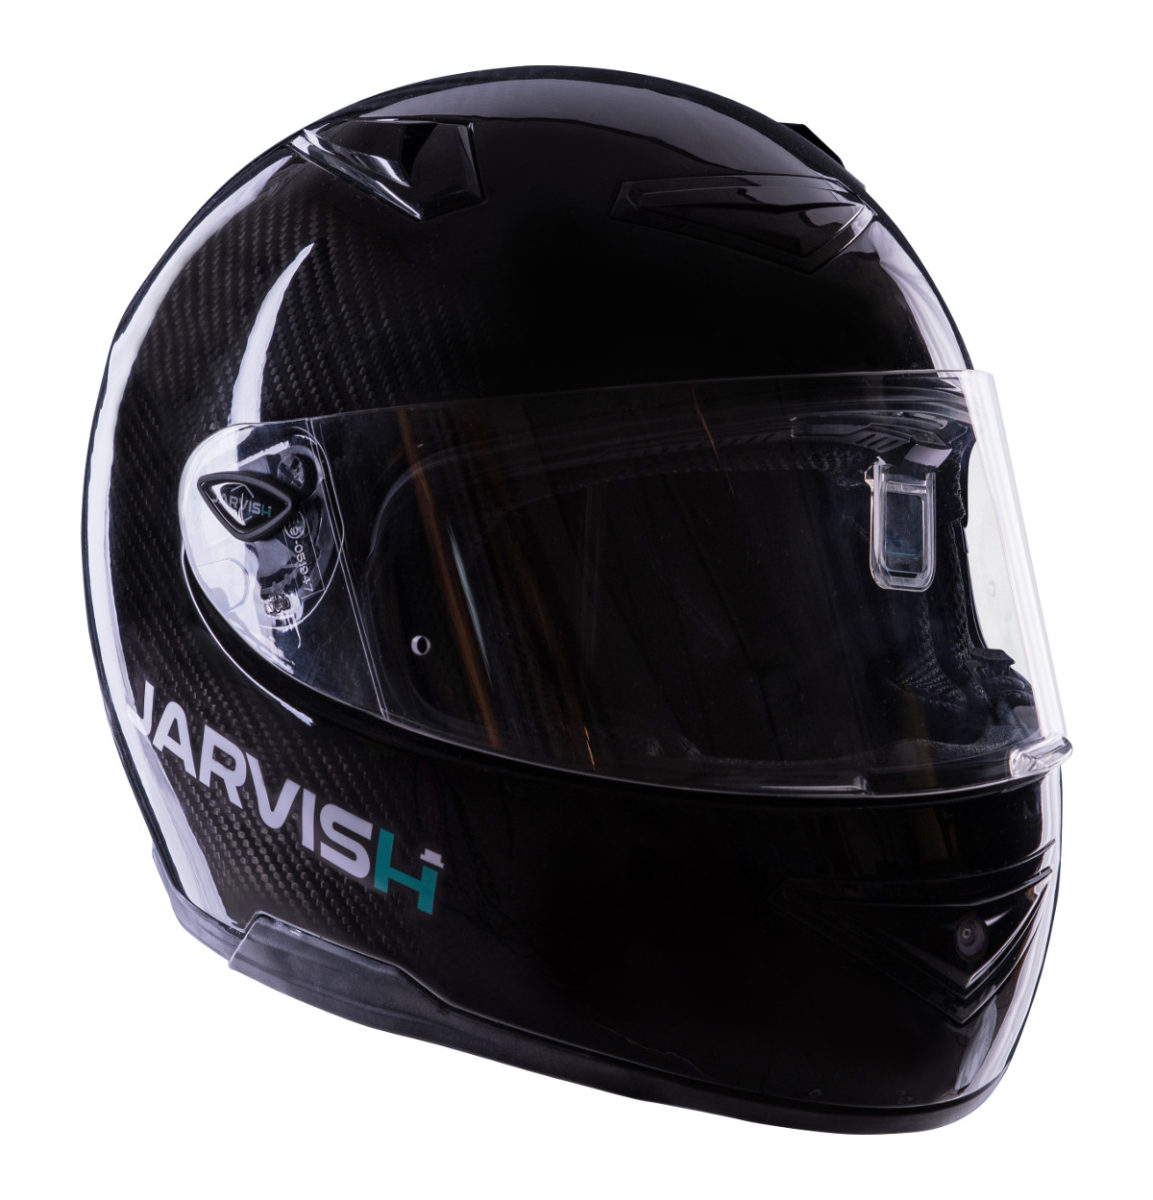 Tech Trends Augmented Reality Helmet Jarvish CES 2019 Smart Helmet Motorcycle Virtual Reality Consultancy